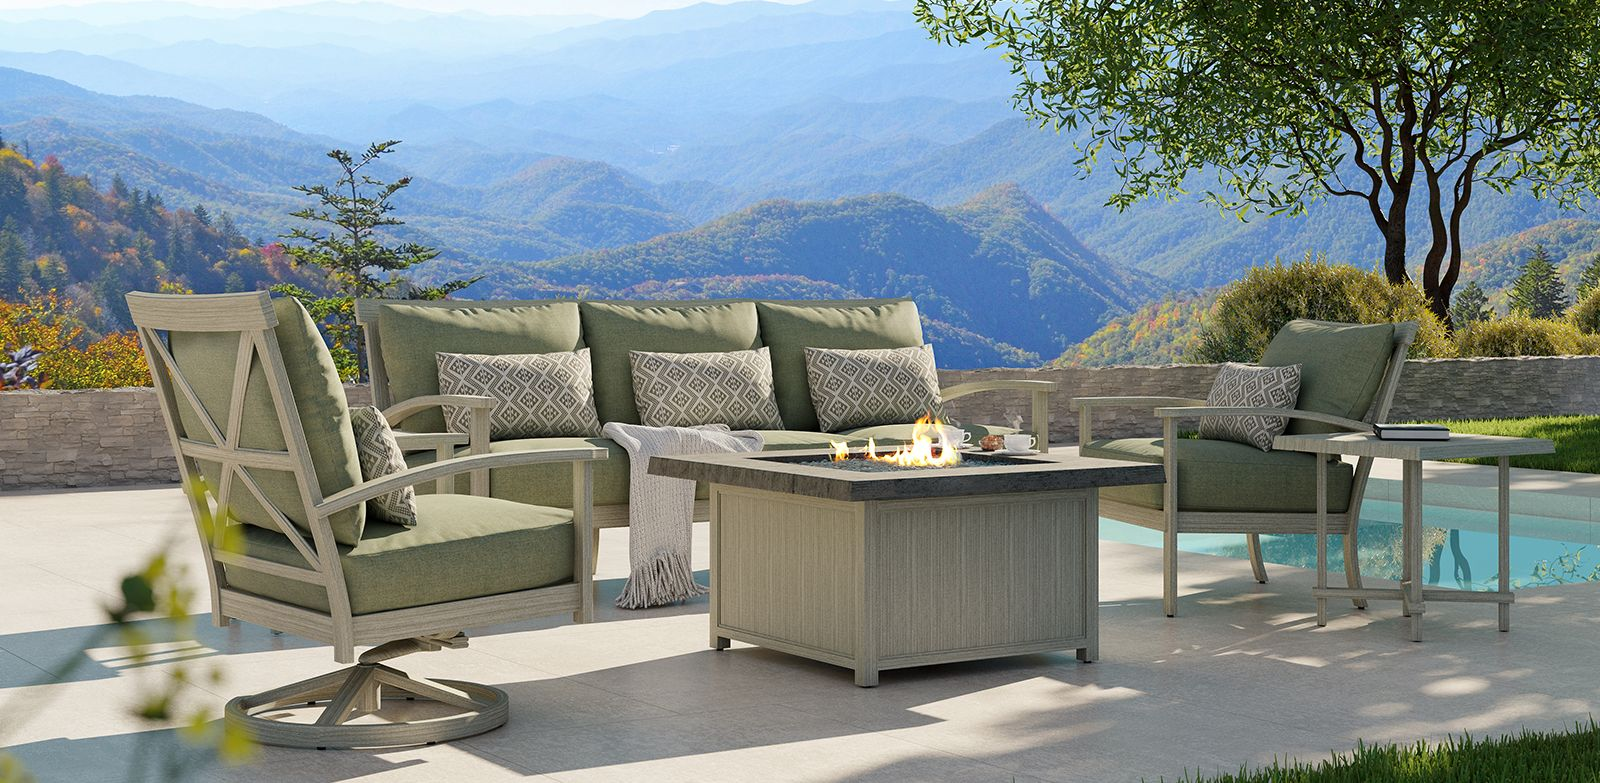 Castelle - Antler Hill - Outdoor Furniture at ABSCO Fireplace & Patio - Birmingham, Alabama